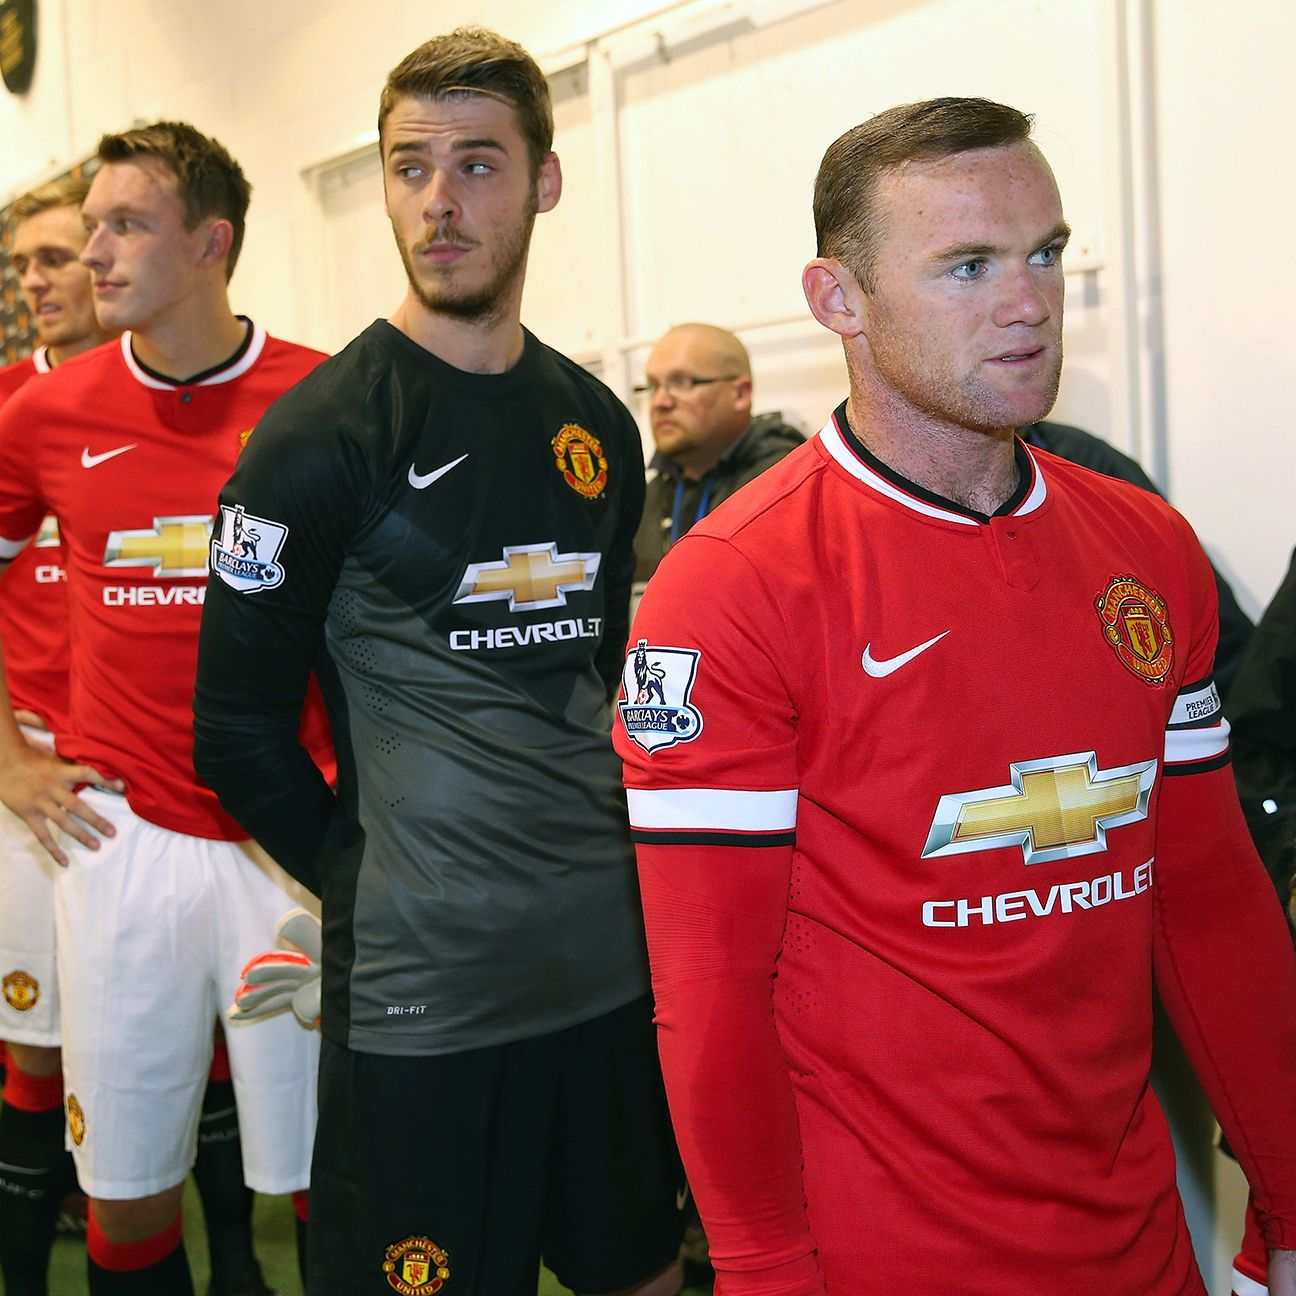 With Rooney as Manchester United's captain, can the Red Devils make it back to the Prem's top table?